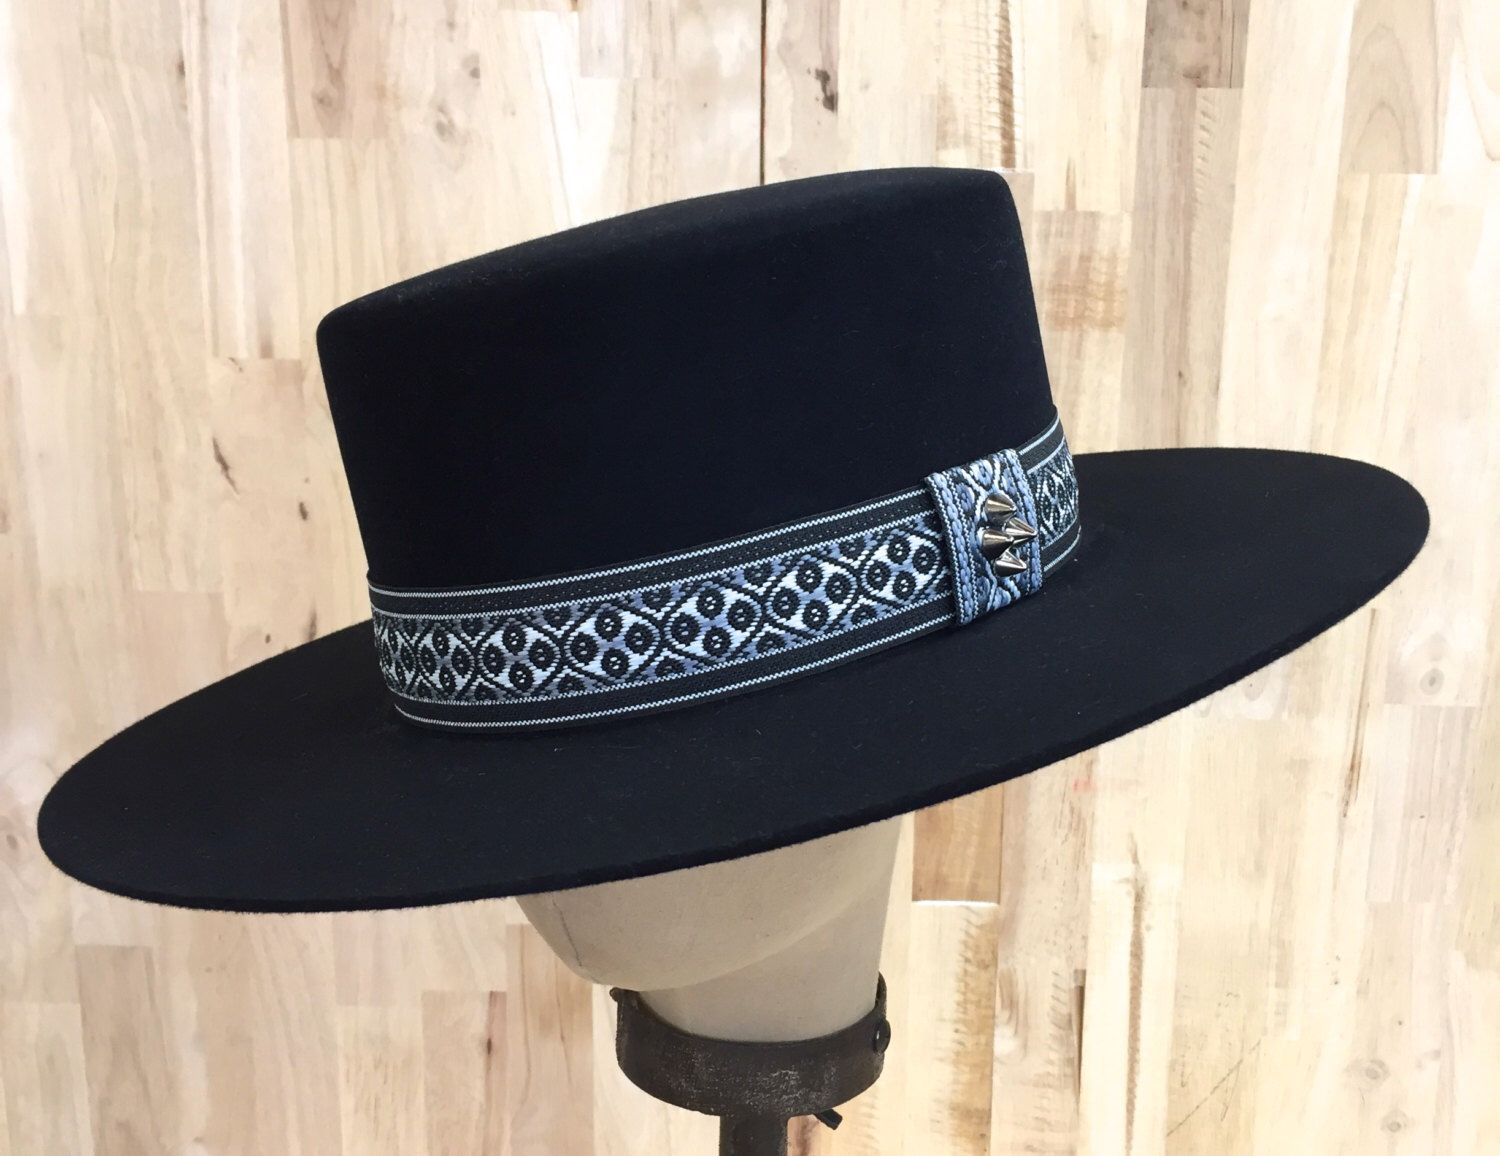 black beaver blend fur felt western hat bolero style with woven ribbon  hatband with silver stud accent 631e736c8